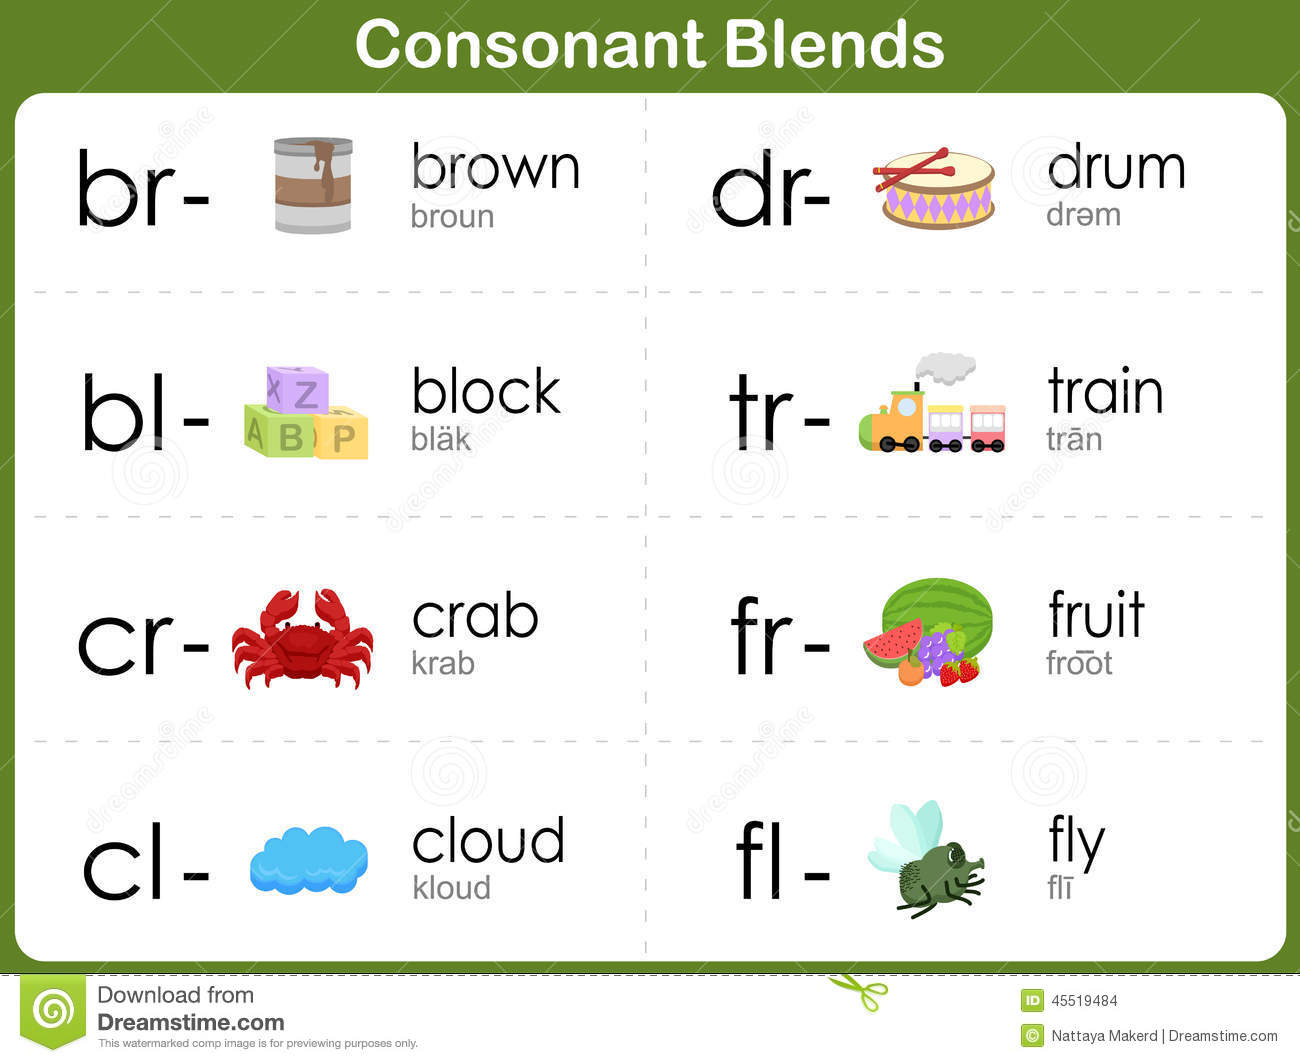 Worksheets Consonant Blends Worksheets consonant blends worksheet for kids stock vector illustration of fruit alphabet